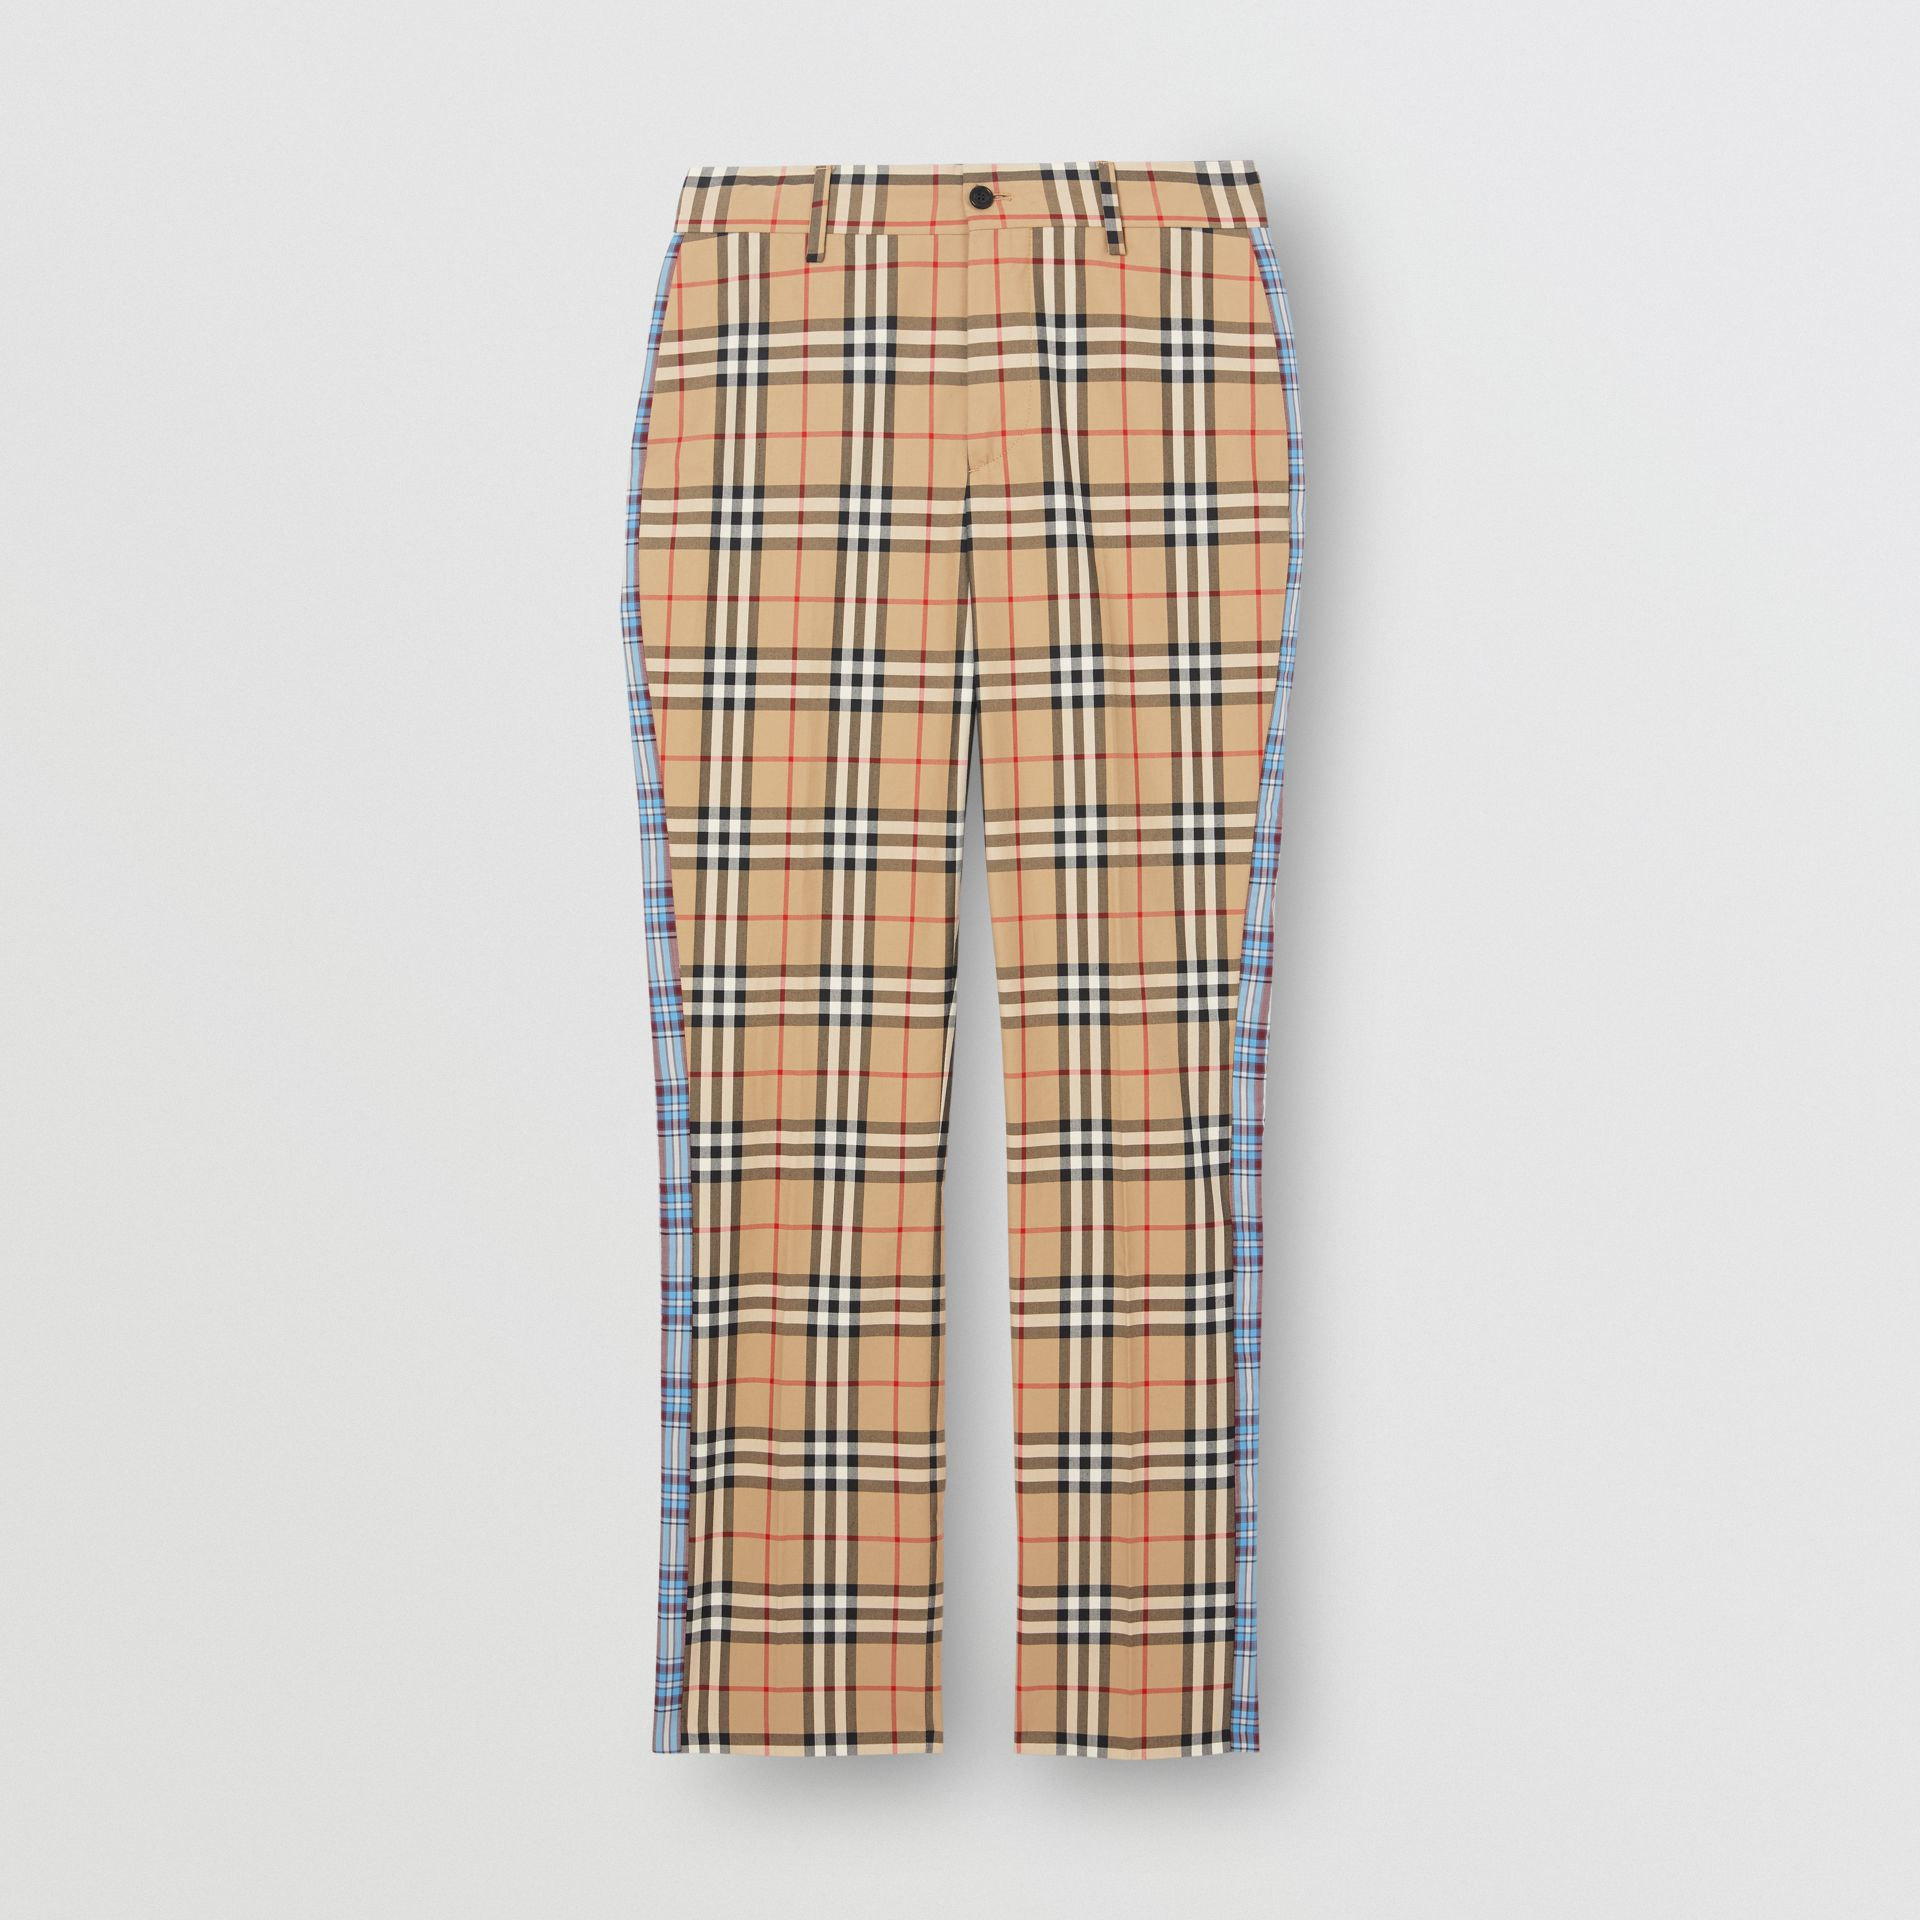 Pantalon droit en coton check (Beige D'archive) - Femme | Burberry - photo de la galerie 3